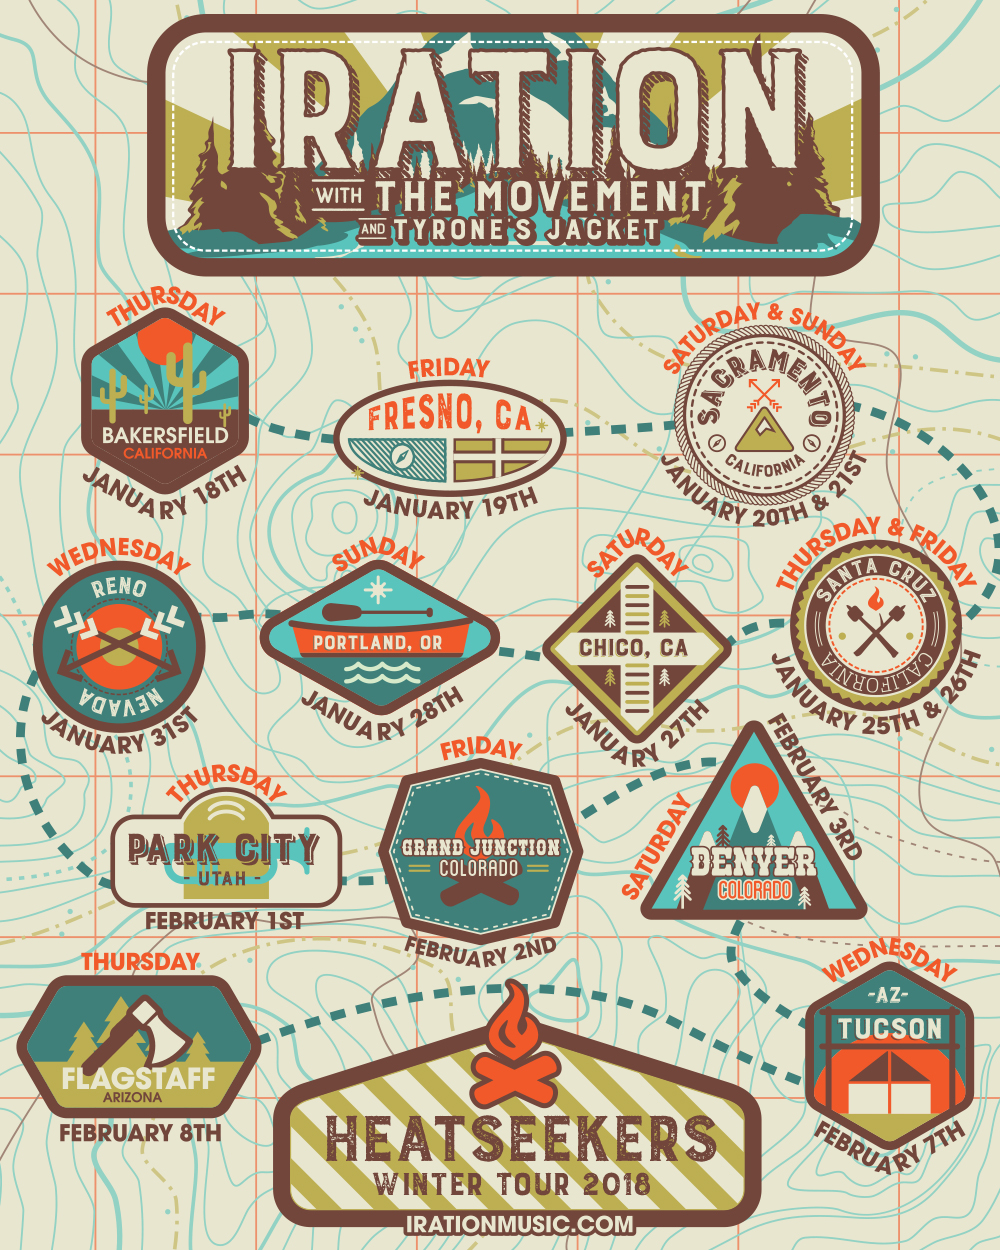 IRATION_HEATSEEKERS-2018_Instagram_FULL-DATES_v2.jpg